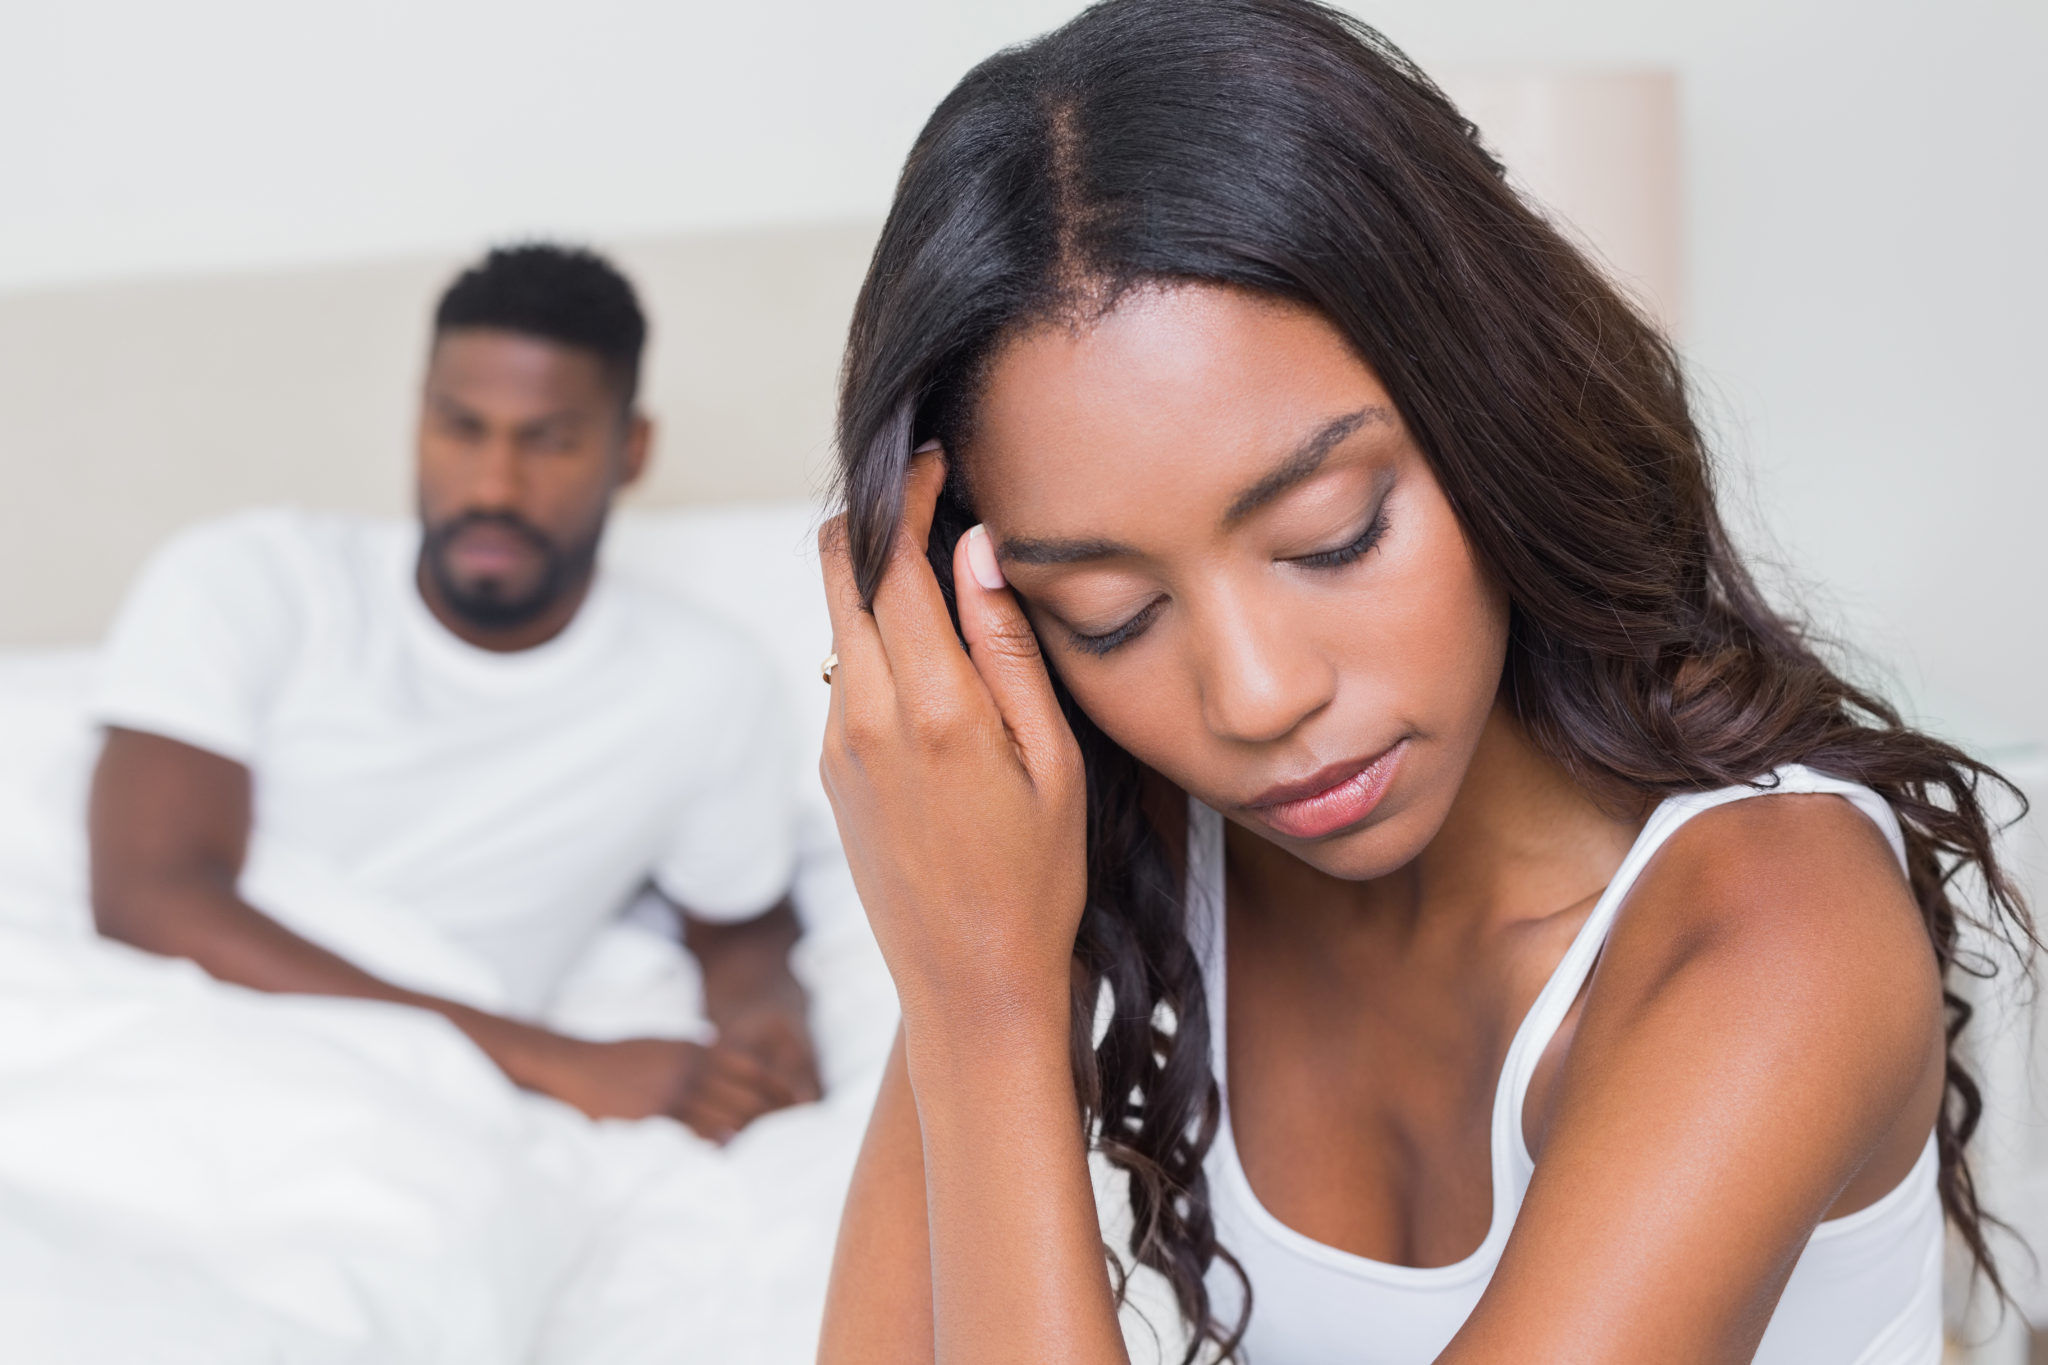 Upset couple not talking to each other after fight at home in bedroom